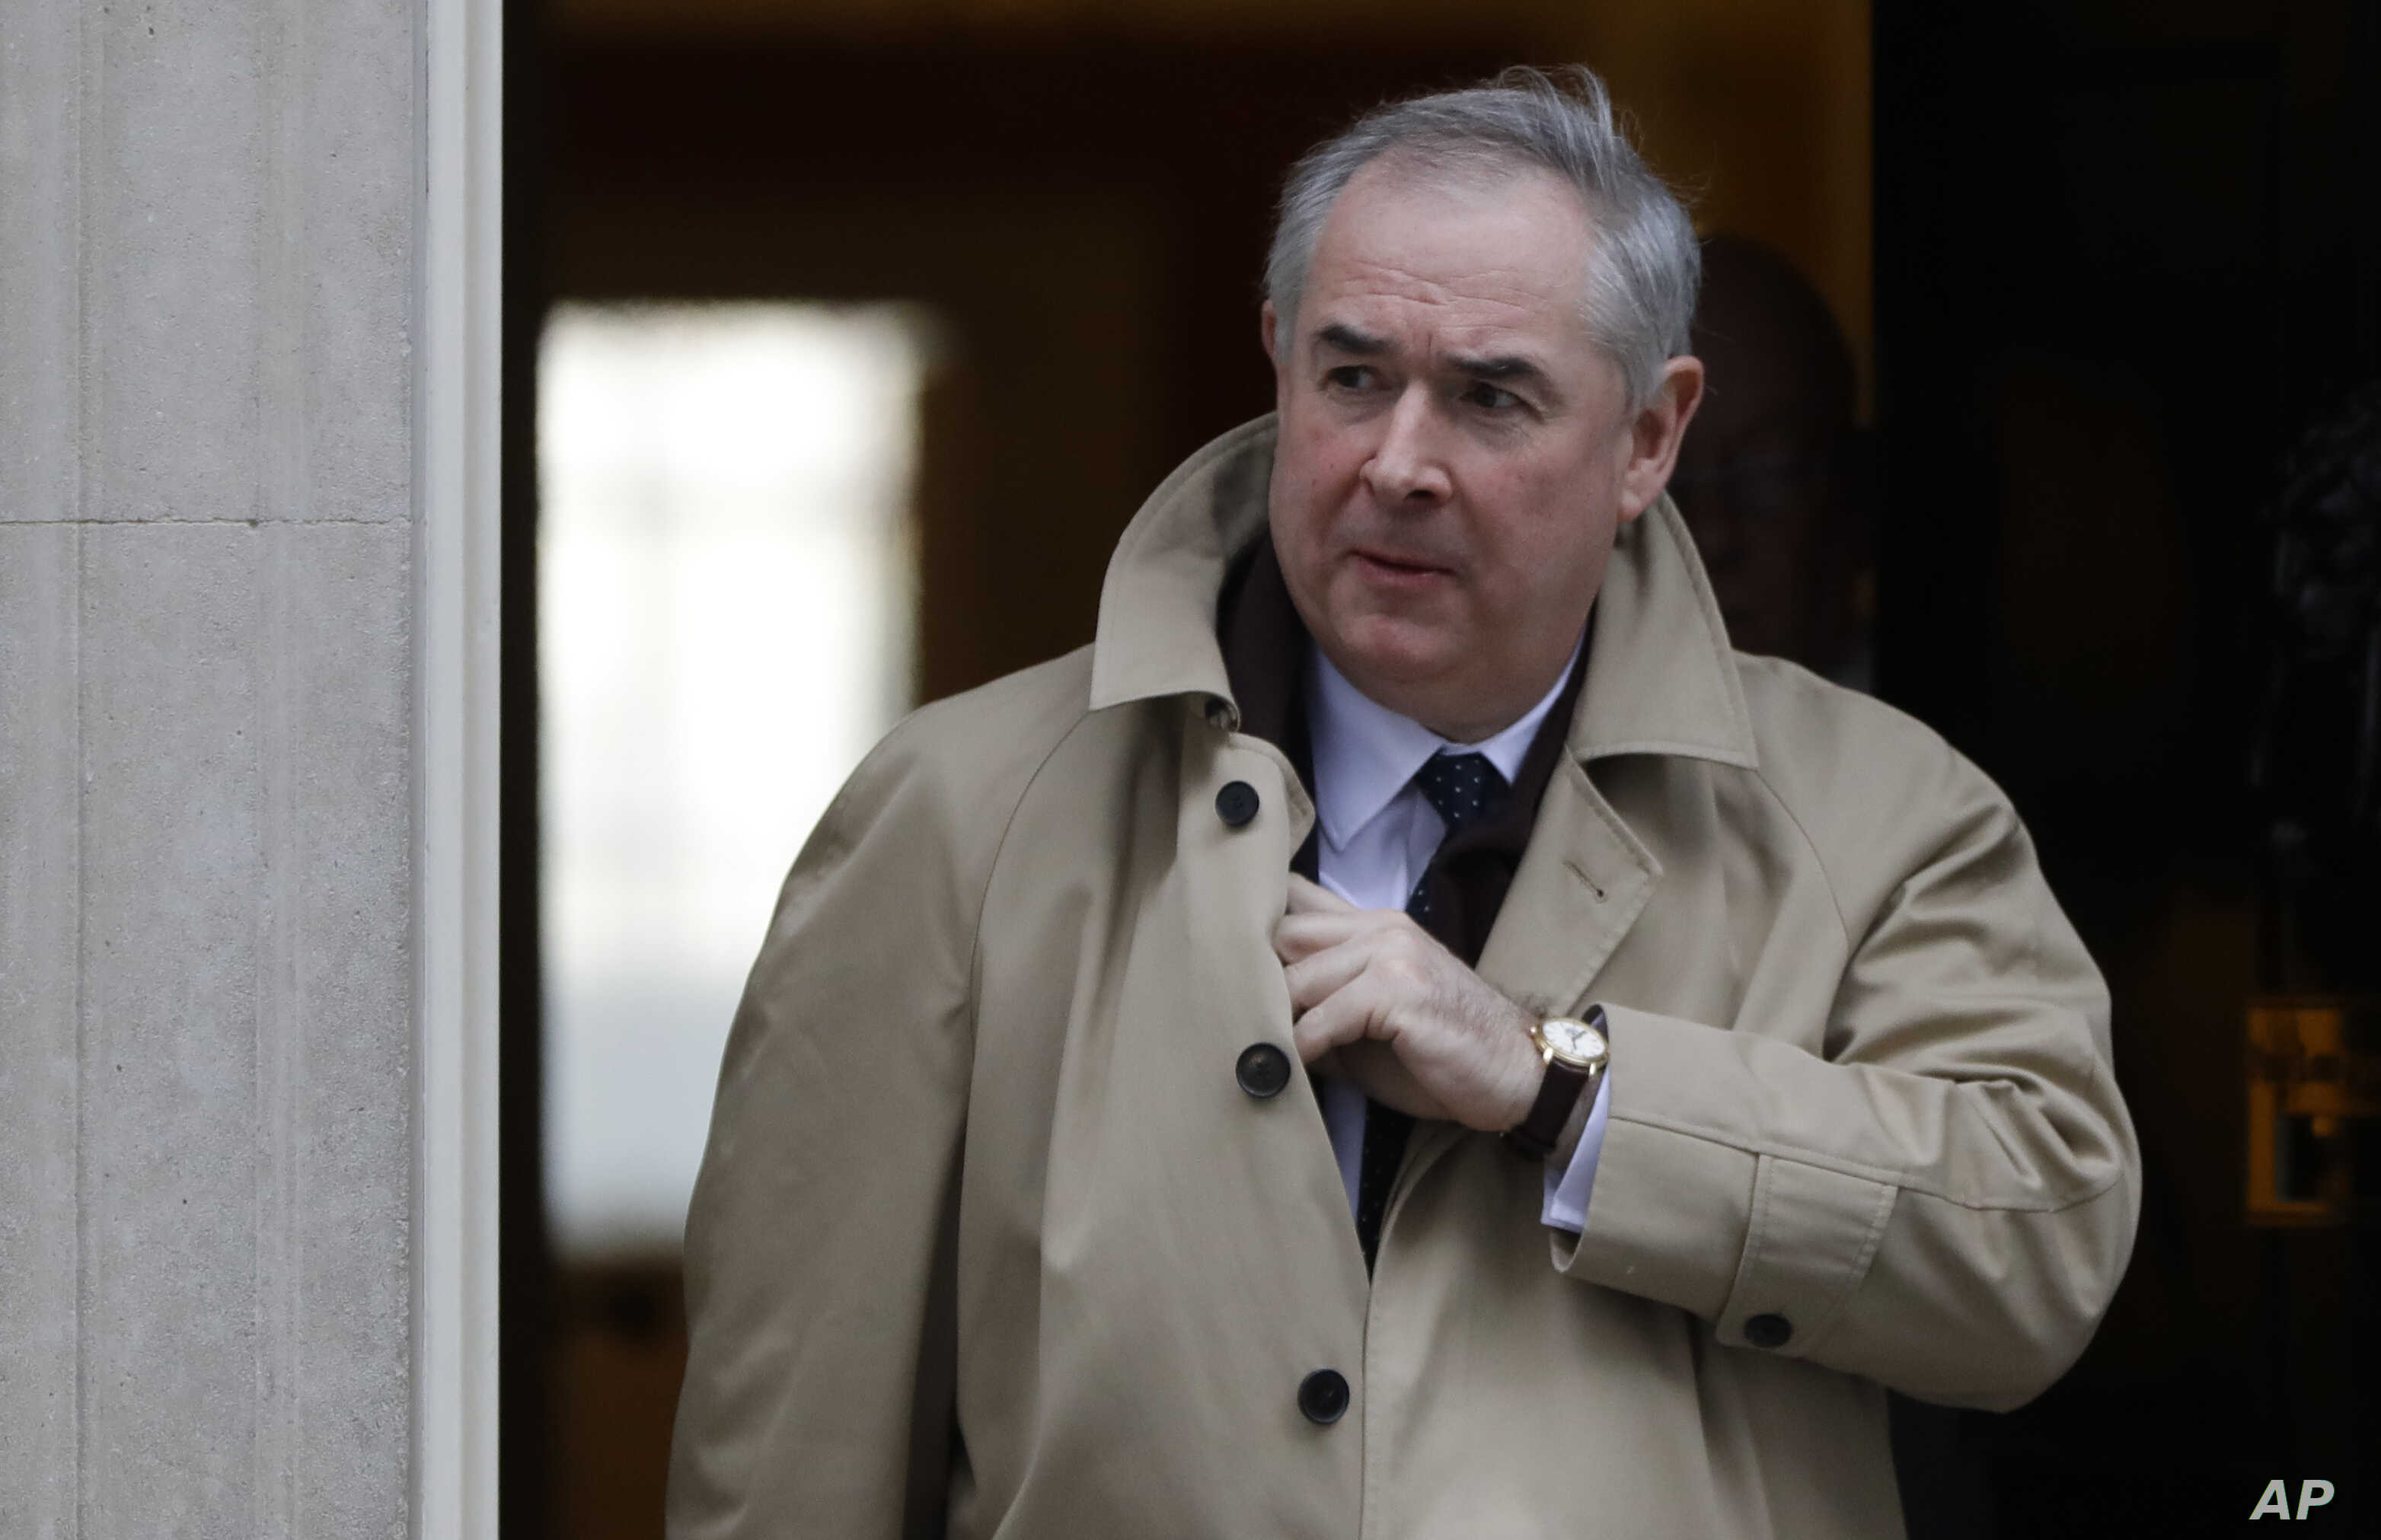 British Attorney General Geoffrey Cox leaves after a cabinet meeting at Downing Street in London, Jan. 29, 2019.